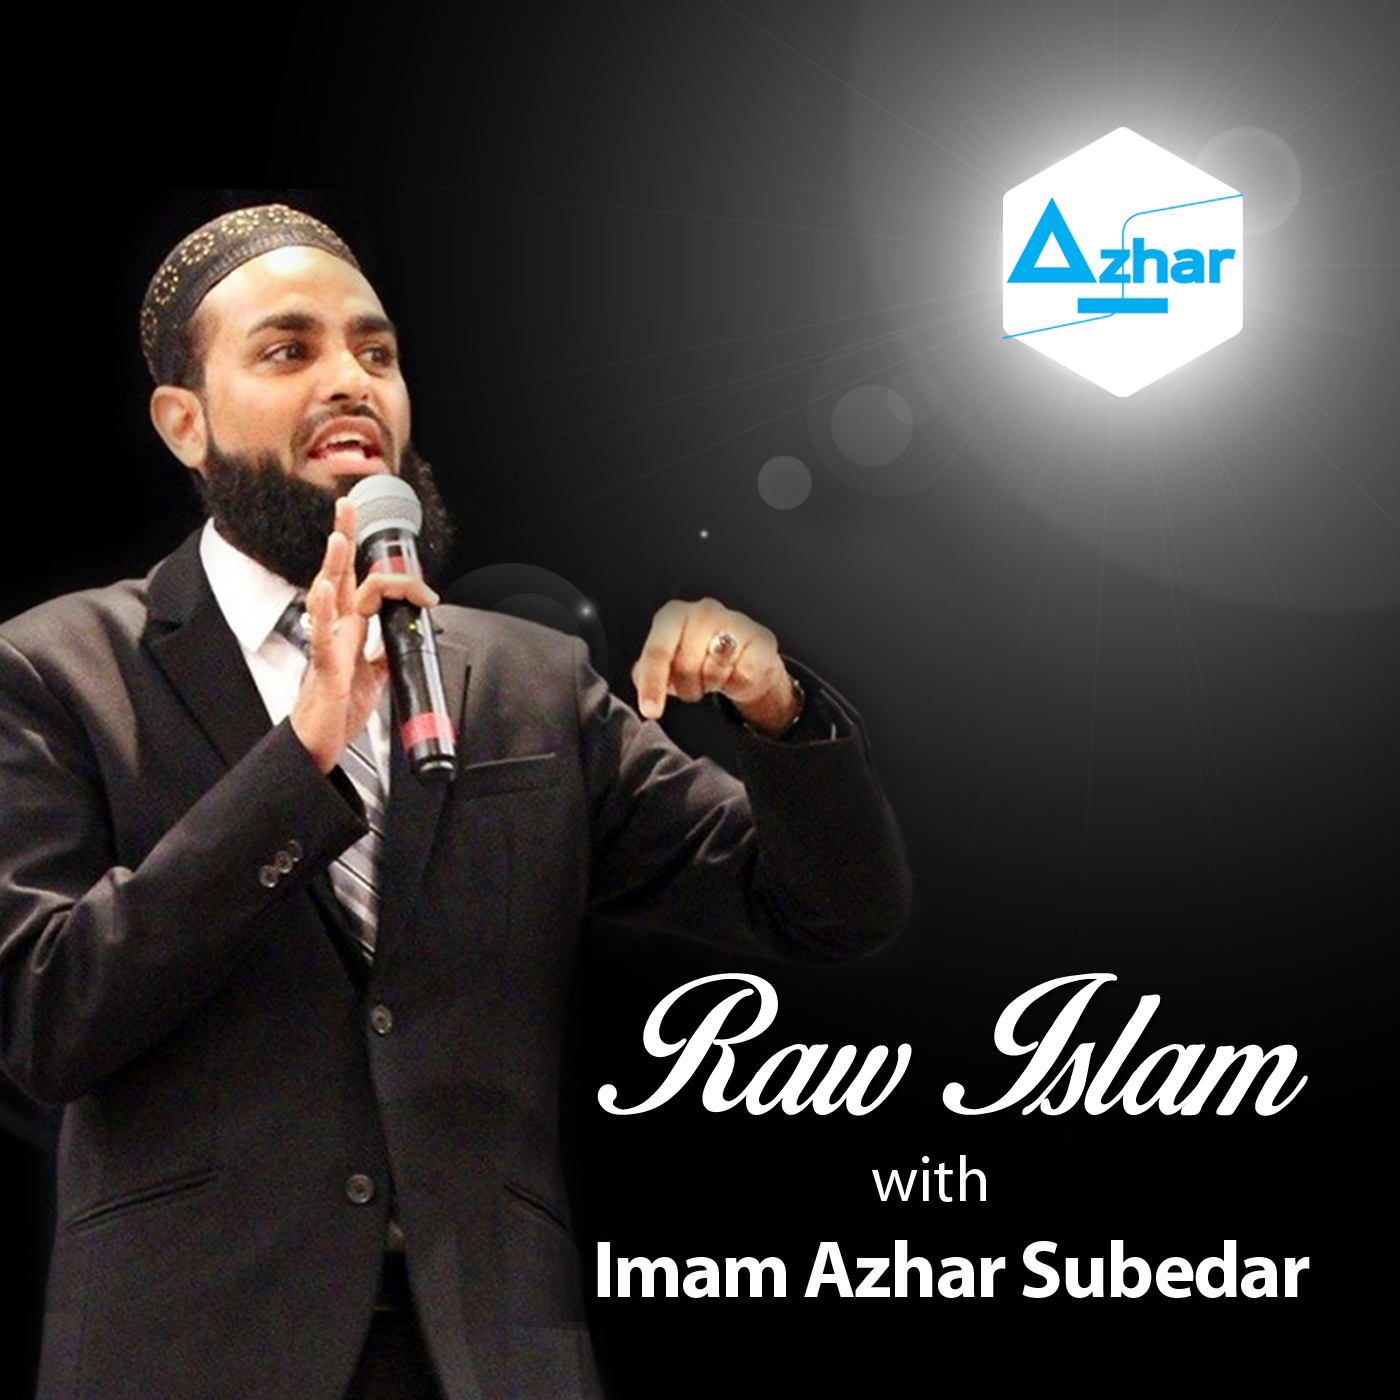 Raw Islam with Imam Azhar